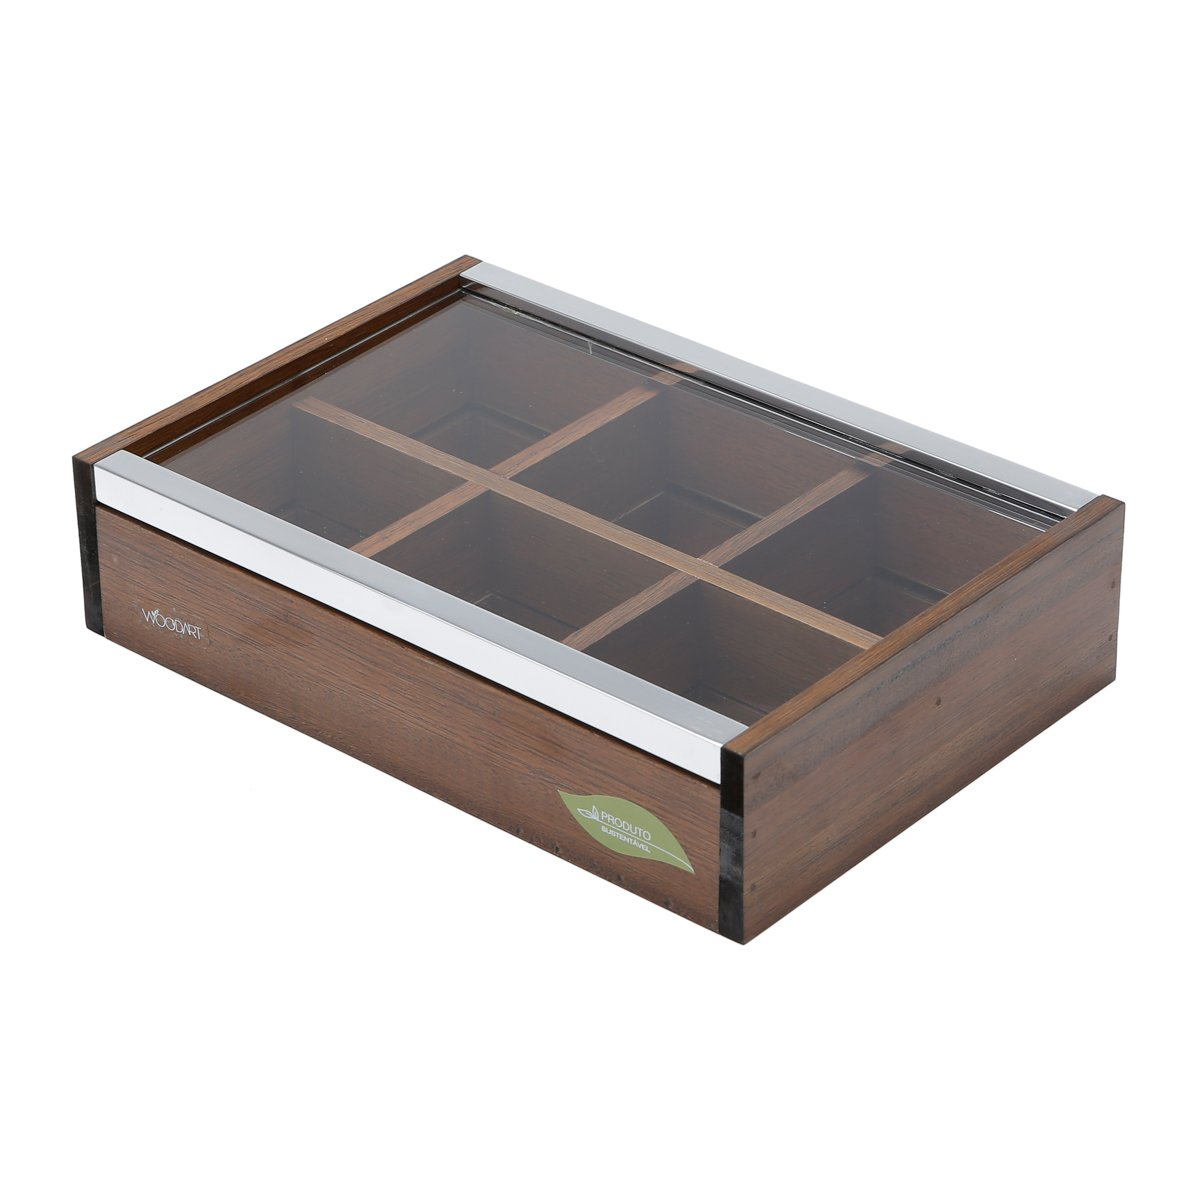 WOODART Wooden Tea Box- Tea Bag Organizer, Tea Chest, Tea Storage (6 compartments with lid)